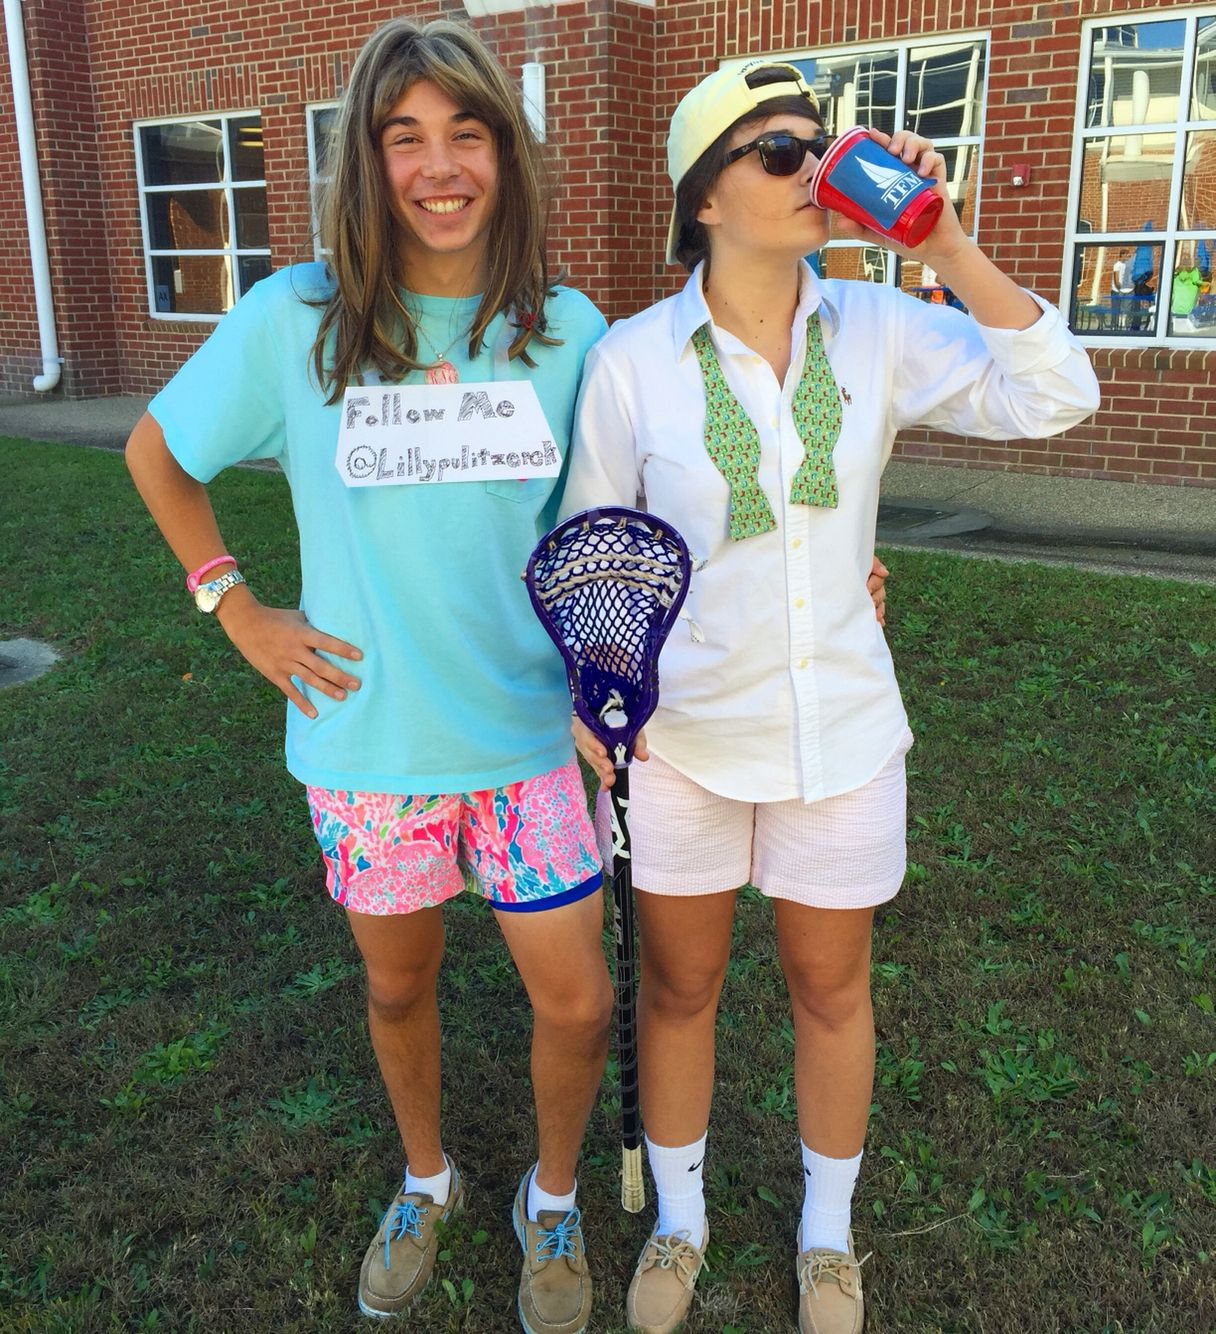 Frat guy and sorority girl Halloween costume// lillypulitzerck  sc 1 st  Pinterest & Frat guy and sorority girl Halloween costume// lillypulitzerck ...